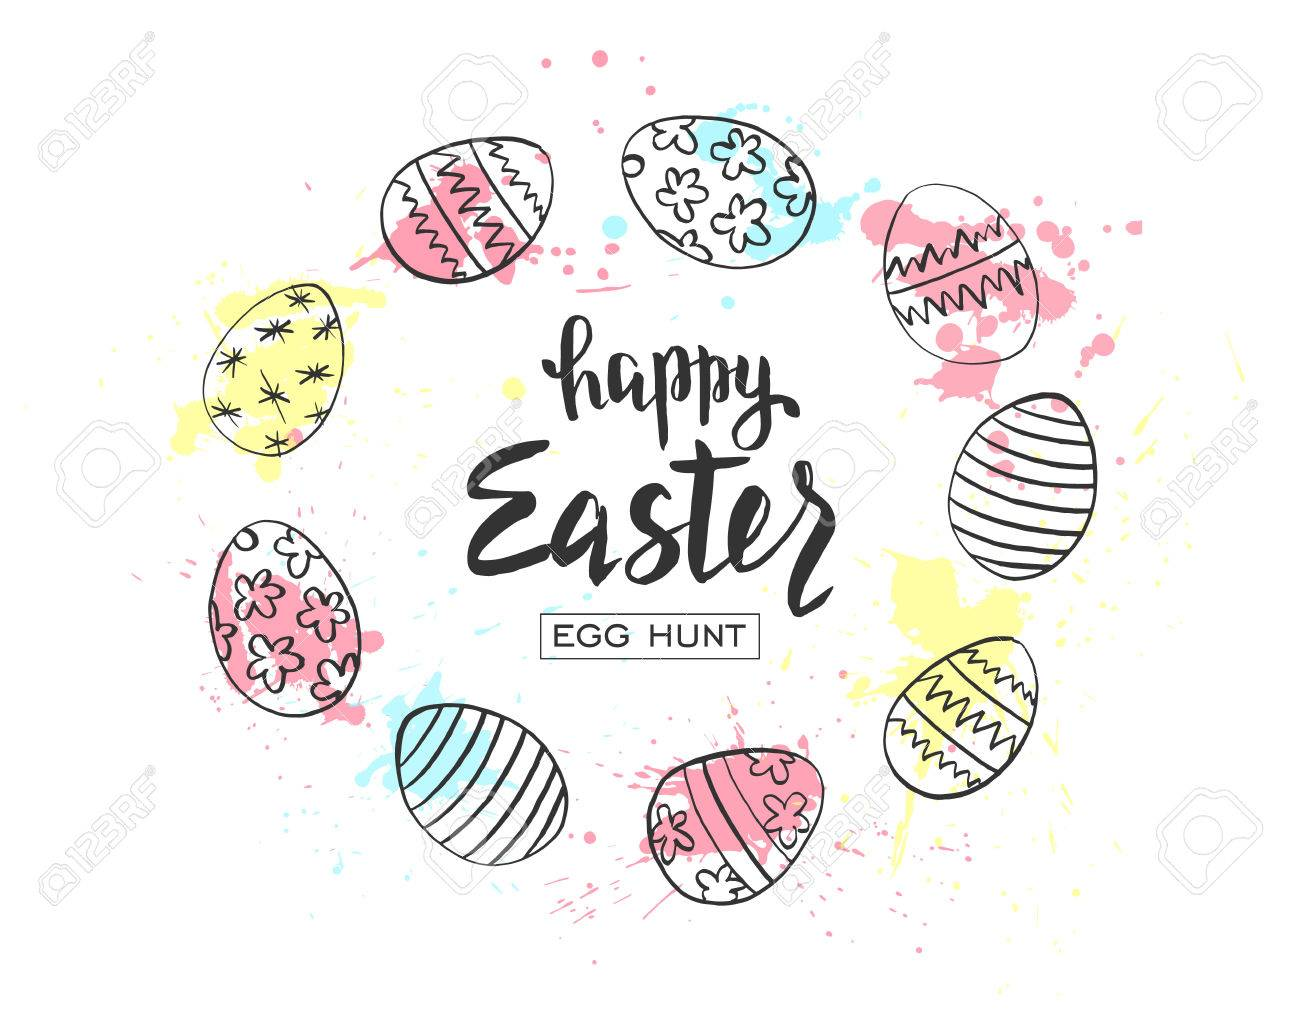 1300x1021 Happy Easter Egg Hunt Vector Illustration. Holiday Banner Design